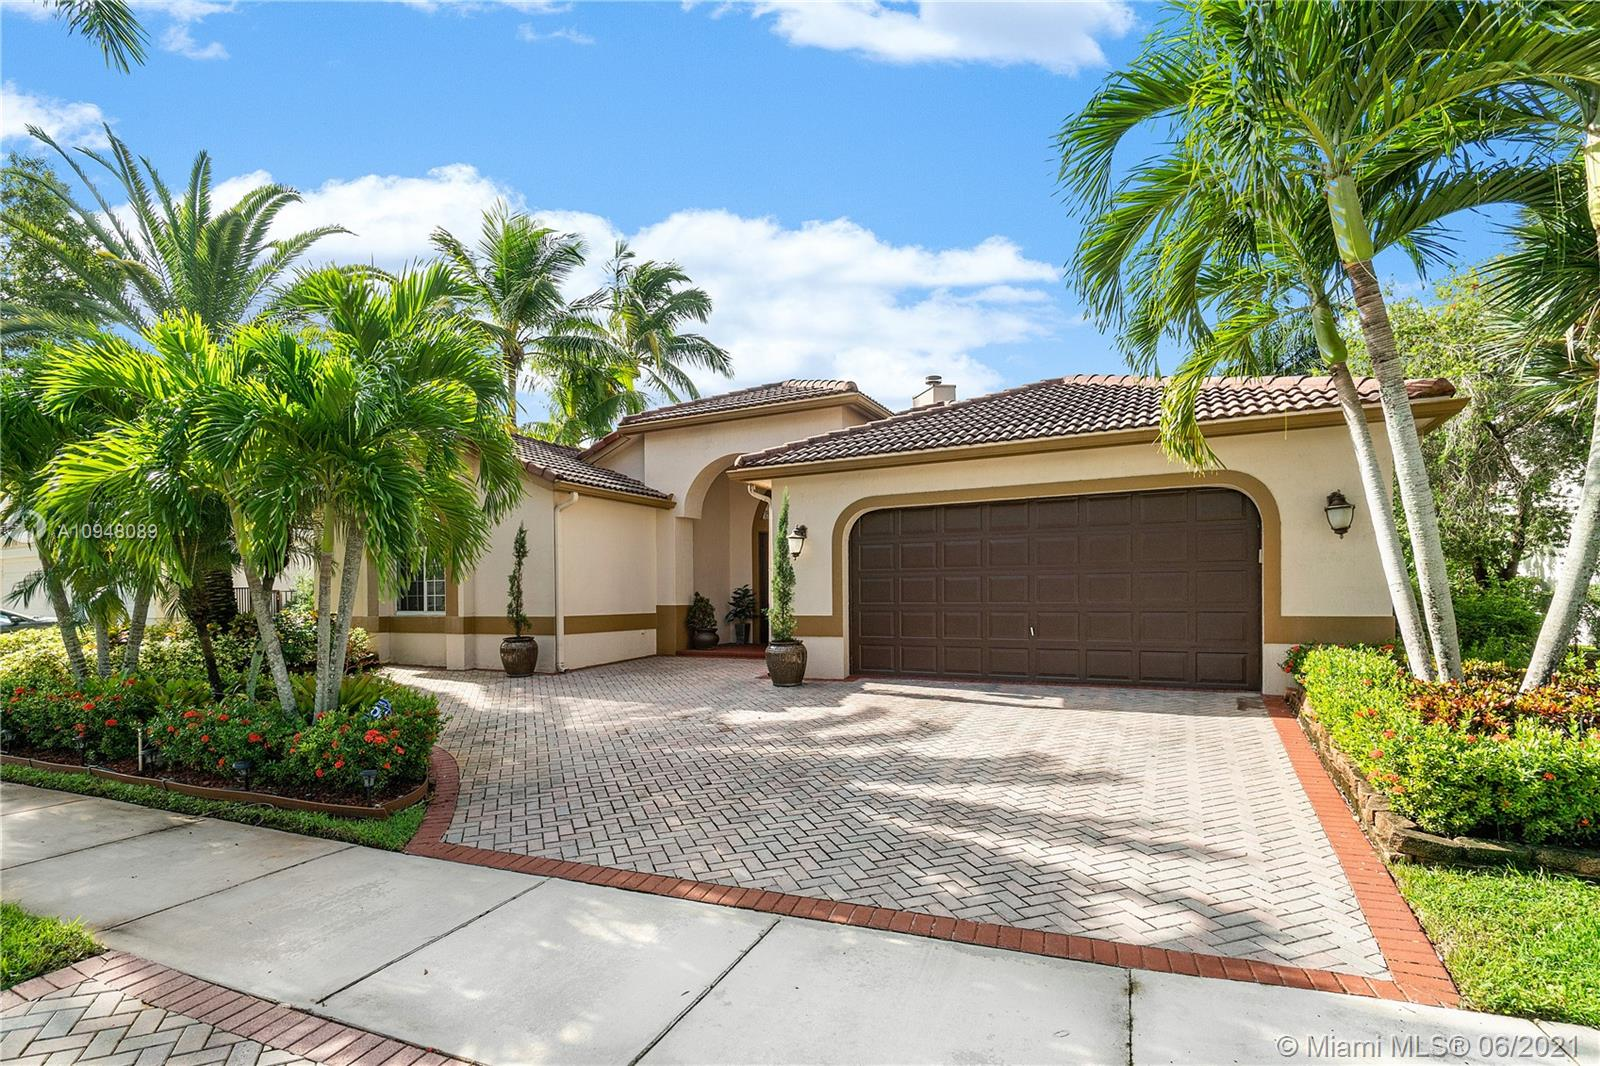 """Unique, totally remodeled and rarely available Courtyard Model in Prestigious Weston Hills. This waterfront/pool home features 3 BR/2 bath in the main home and a separate BR/office/in laws or den with full bath. Brand new 32"""" marble tiles throughout including master bedroom and 2 baths. New lighting throughout the house. New large MB closet with built-ins for shoes, drawers and shelves. Newly renovated lg luxury kitchen. New completely renovated master bath with new high end 6 ft long spacious cabinetry, quartz countertops,  crown molded mirrors, newly tiled surround whirlpool and all new faucets on both sinks and whirlpool. New floor to ceiling fireplace including new mantle and stonework. Crown molding and chair rail throughout LR, DR, kitchen and  hall.  Plantation shutters throughout."""